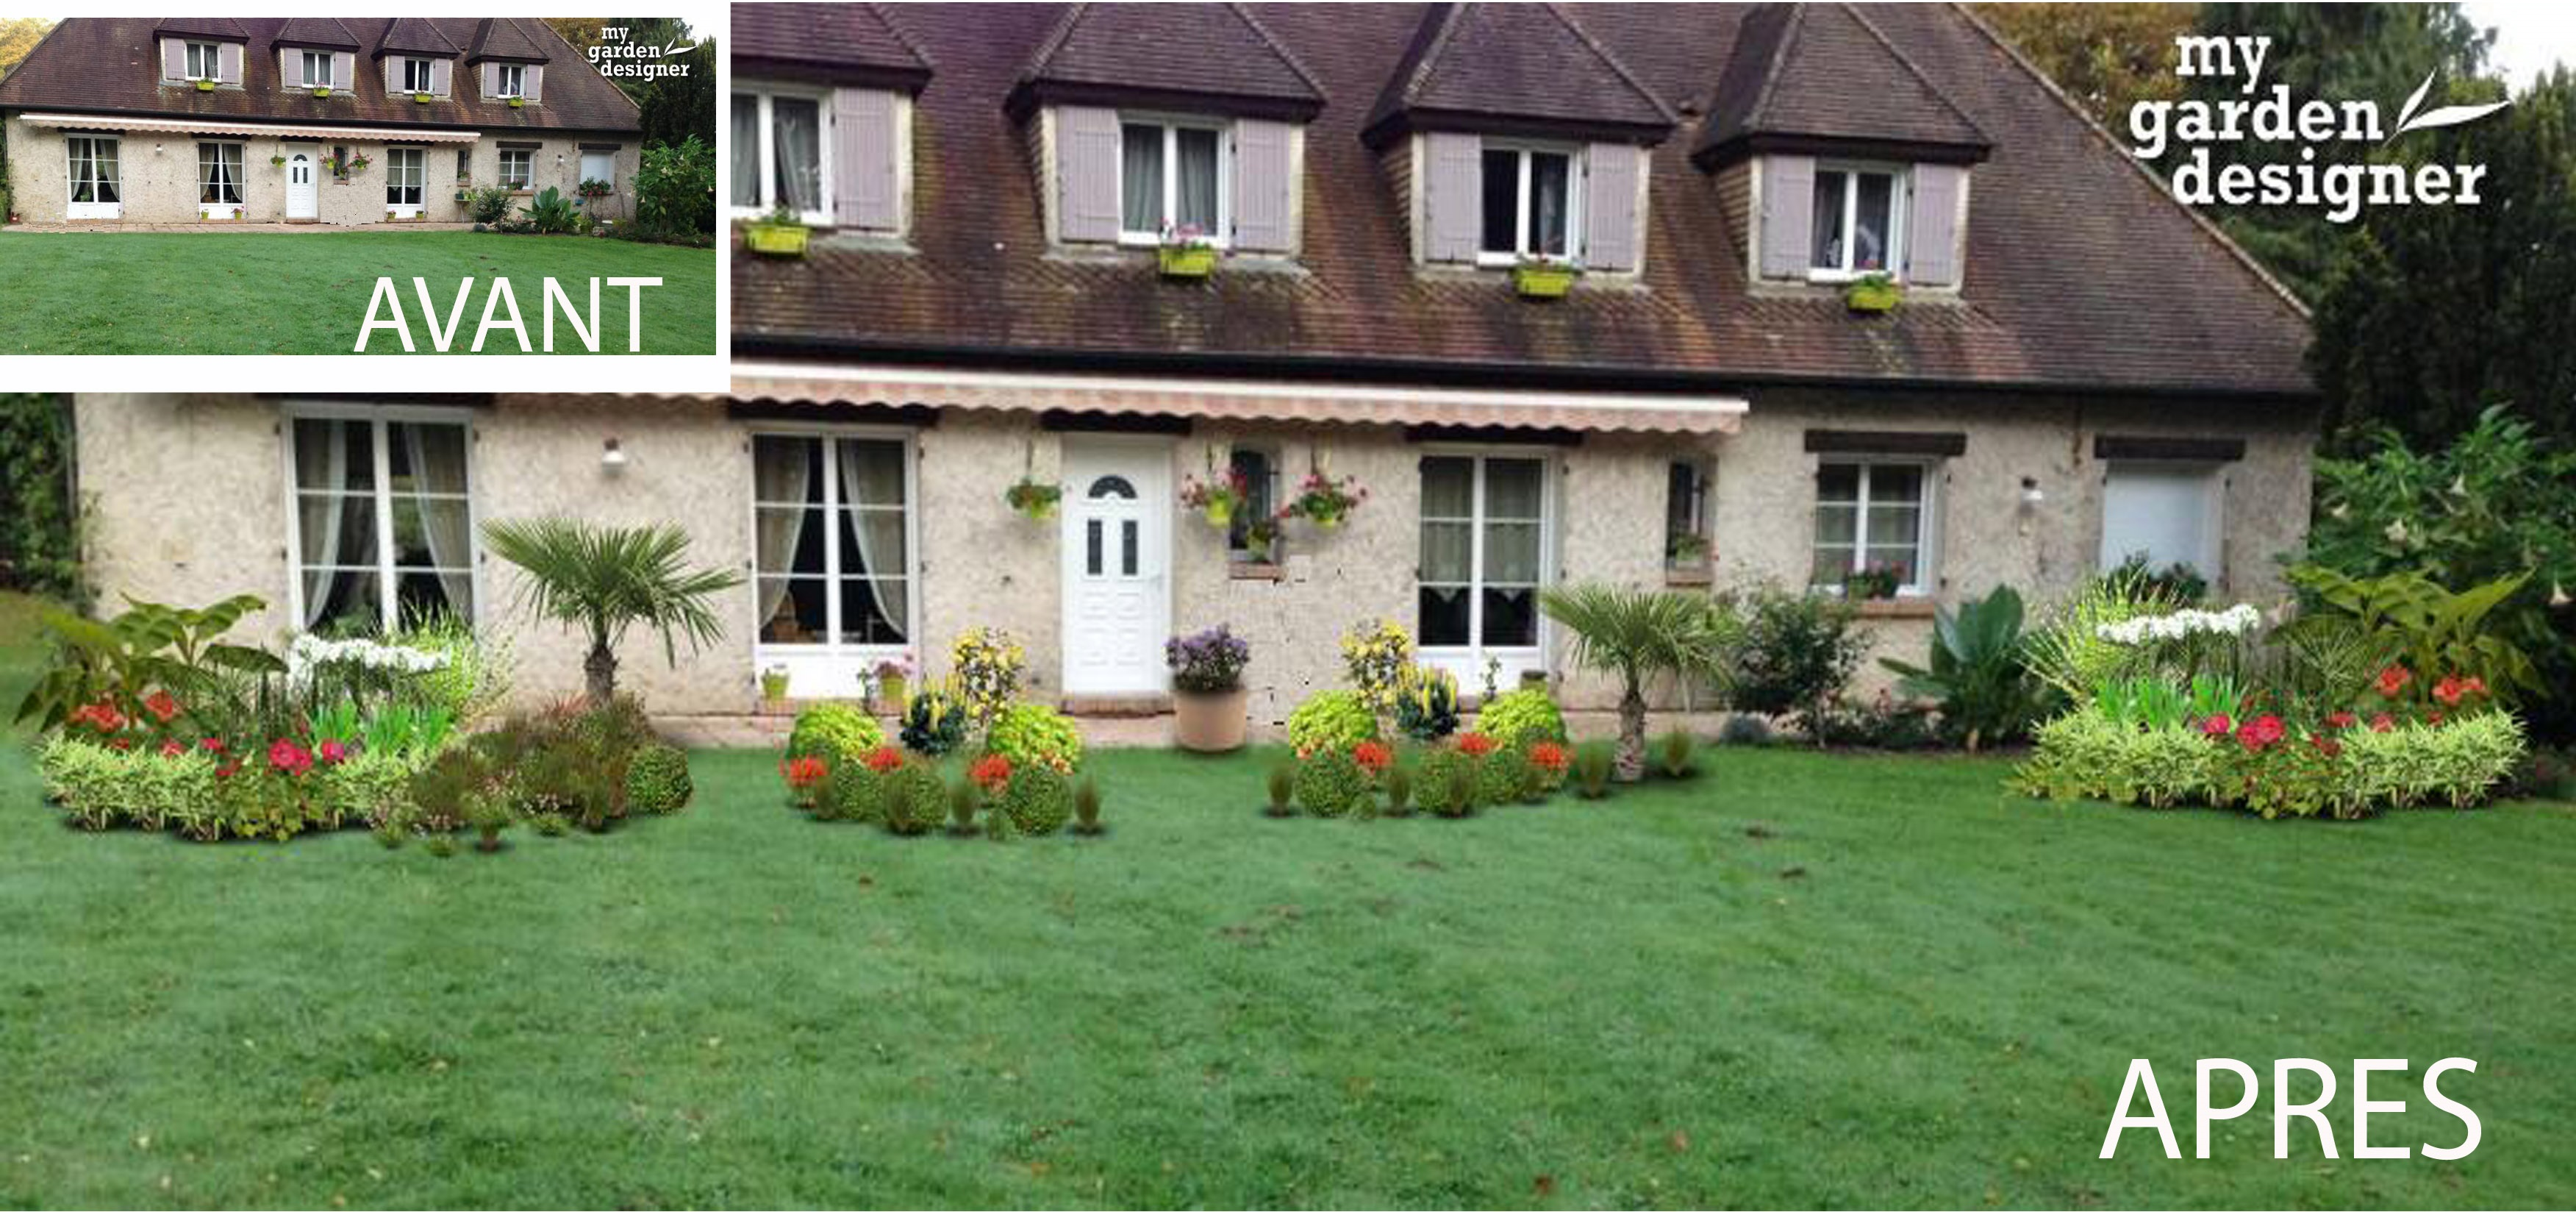 Amenagement d un jardin devant une maison monjardin for Idee amenagement paysager devant maison